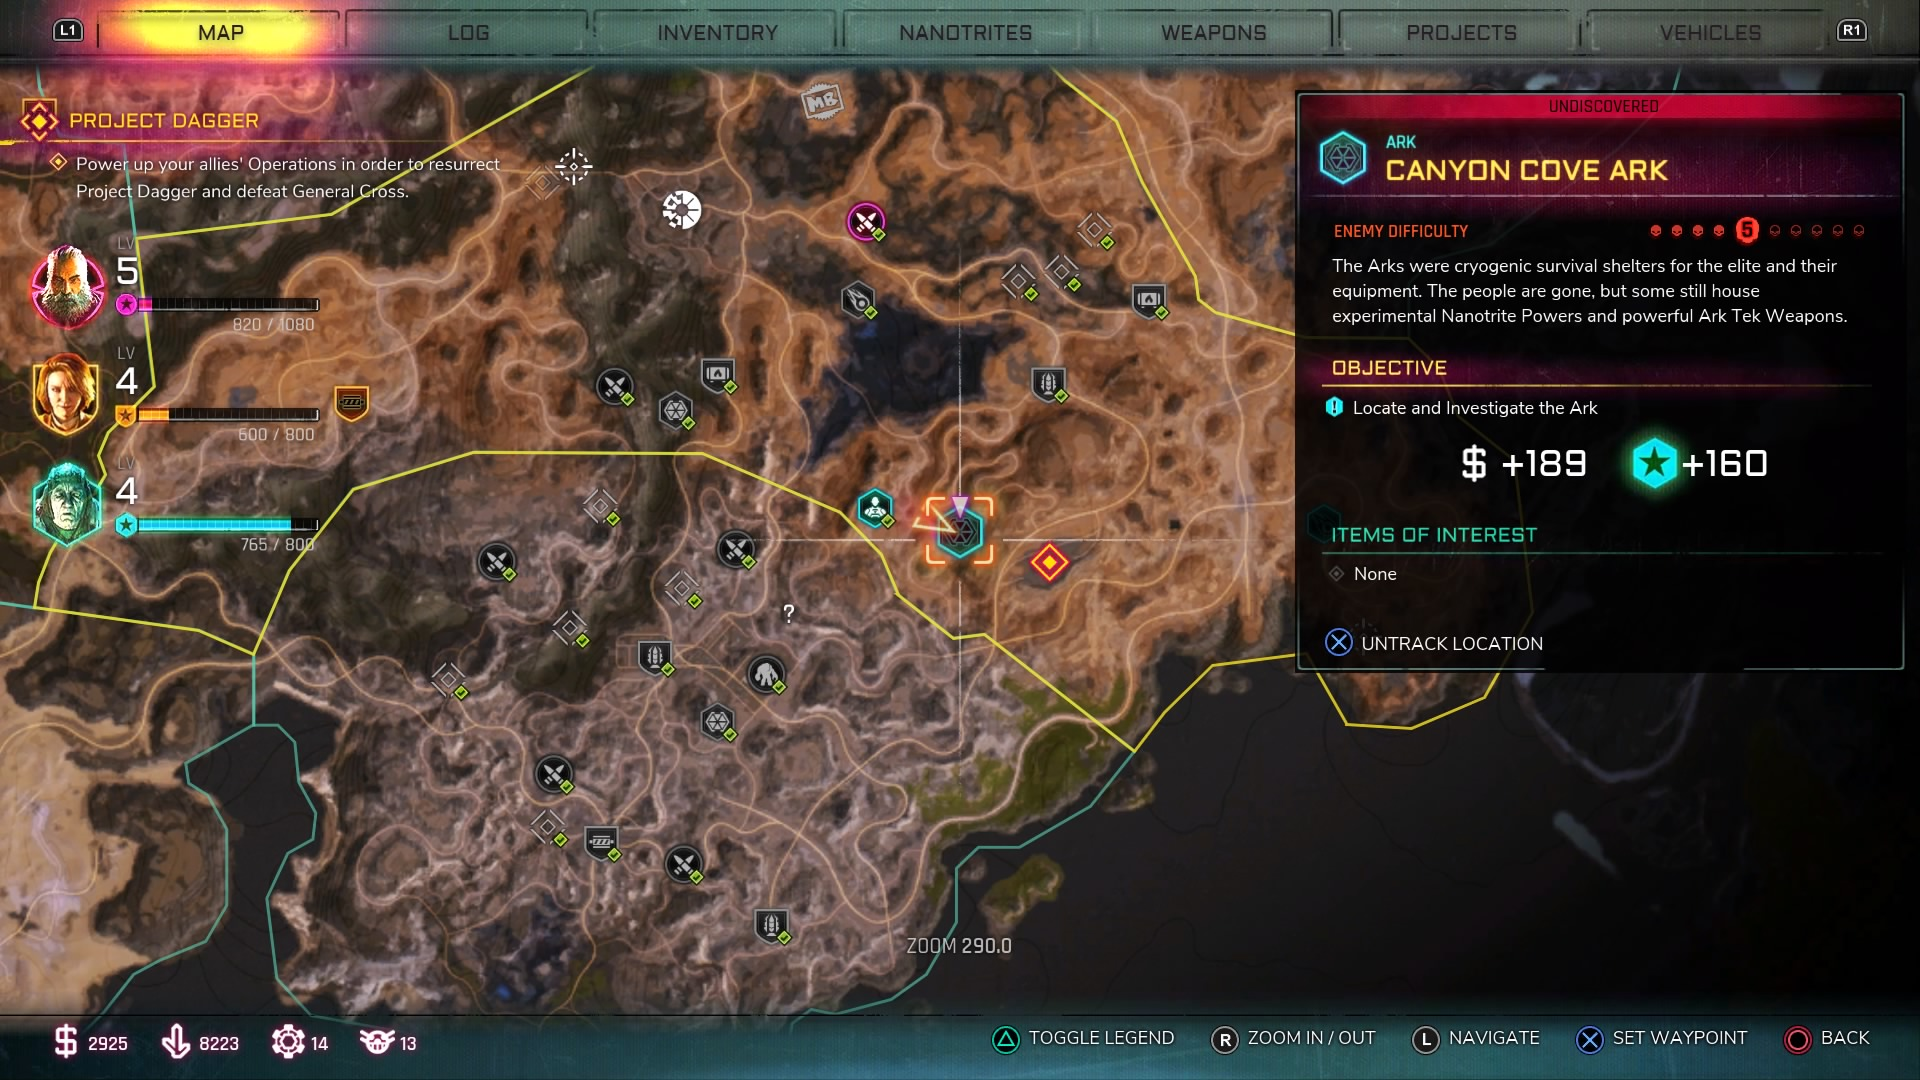 Map screen showing Canyon Cove Ark